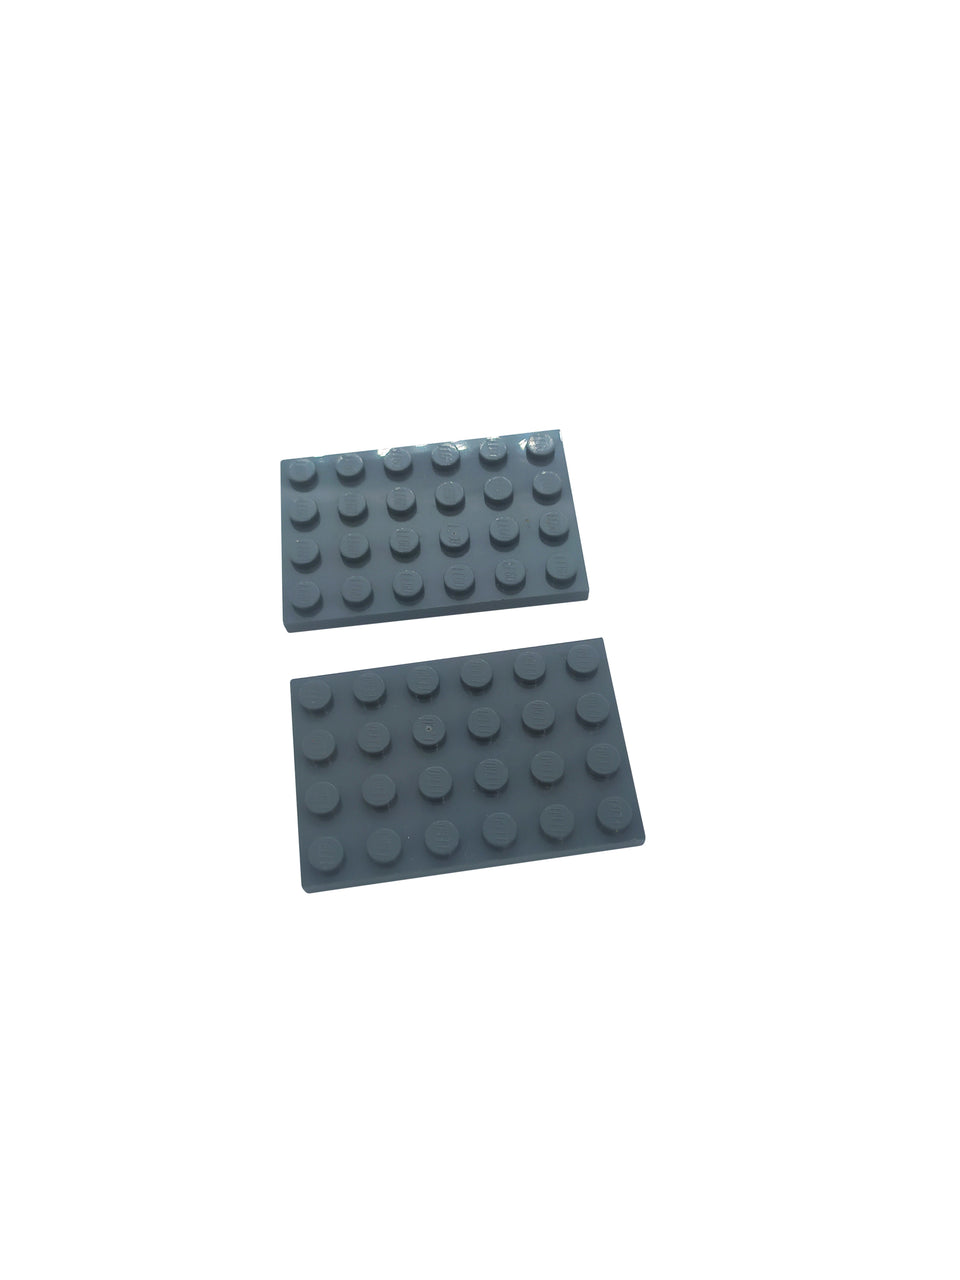 2 dark grey  color surface 6 * 4 - Lego